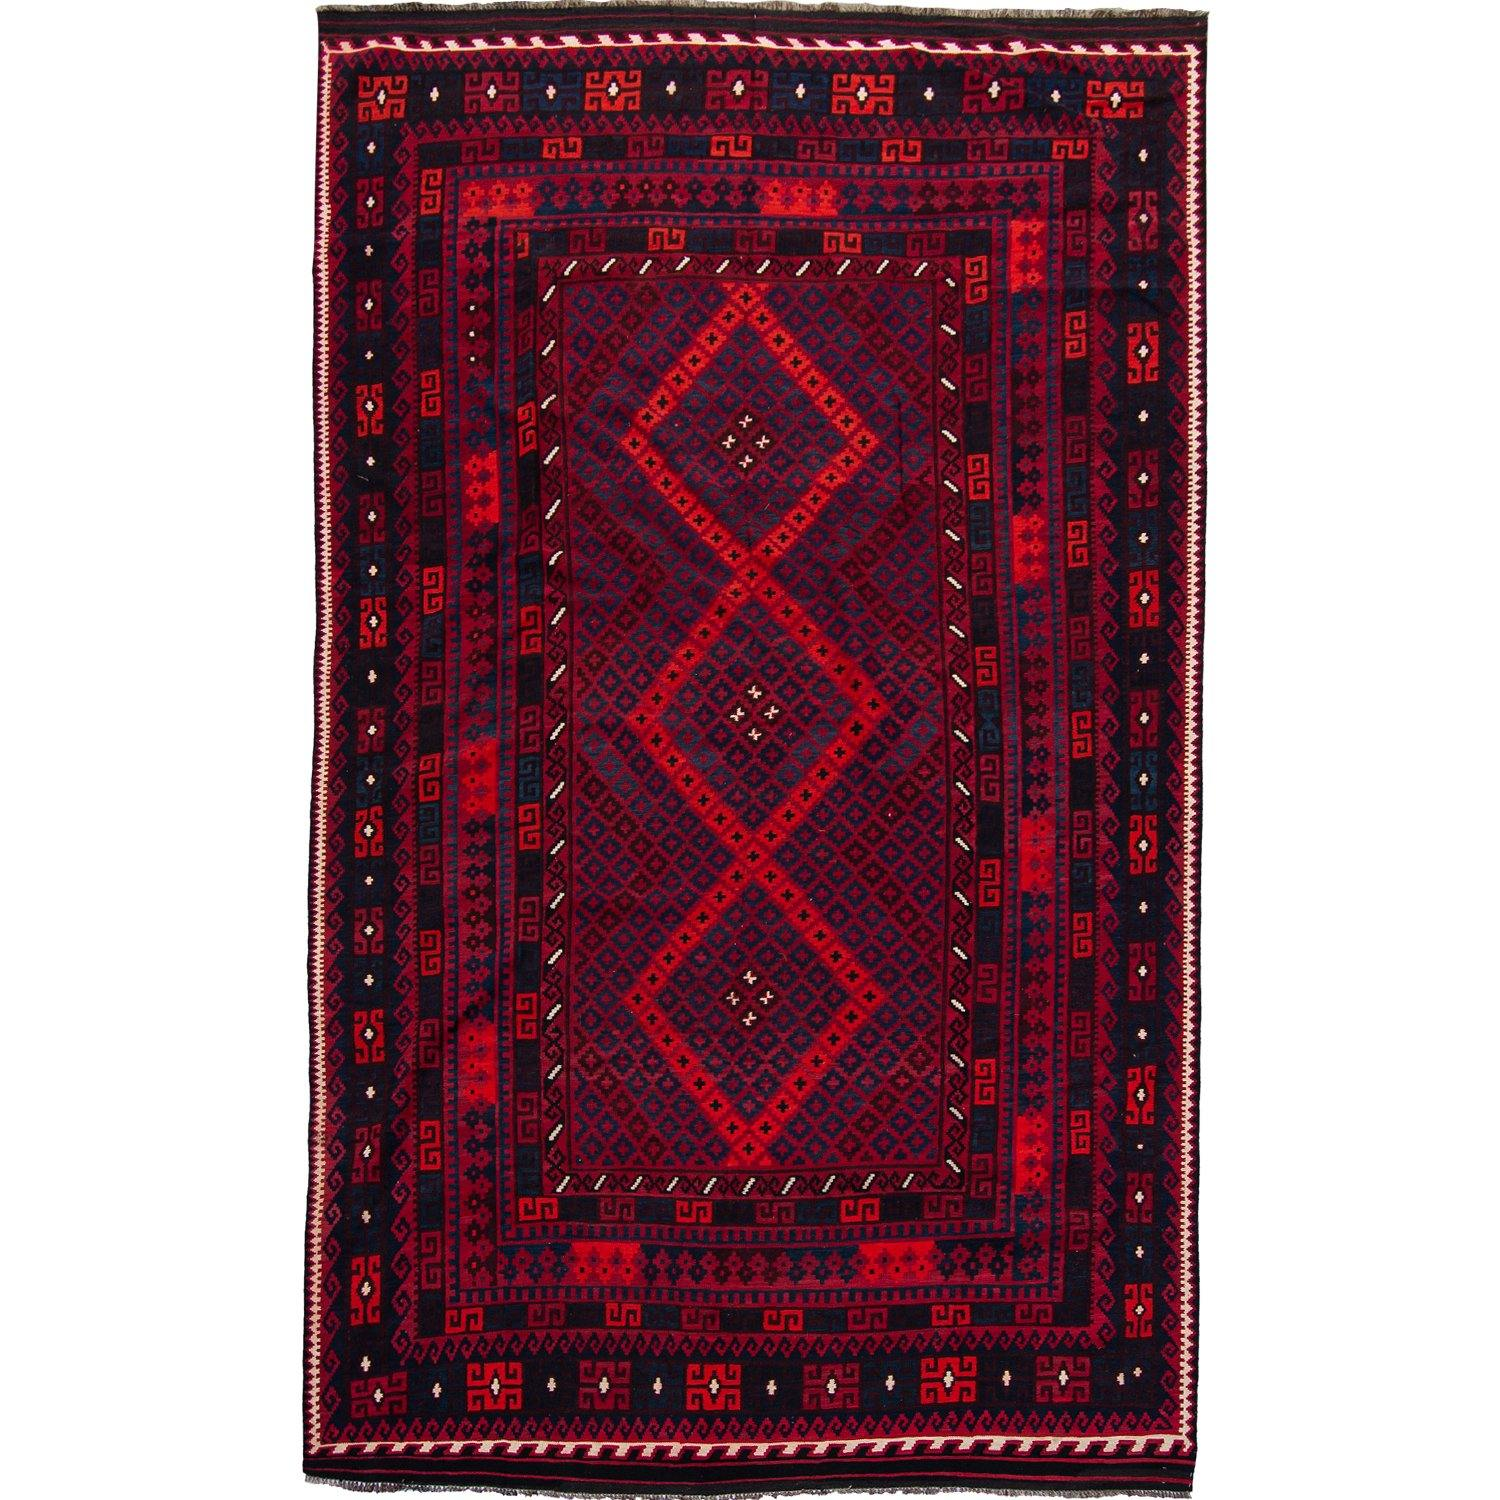 Fine Hand-woven 100% Wool Kilim Rug 286cm x 440cm Persian-Rug | House-of-Haghi | NewMarket | Auckland | NZ | Handmade Persian Rugs | Hand Knotted Persian Rugs